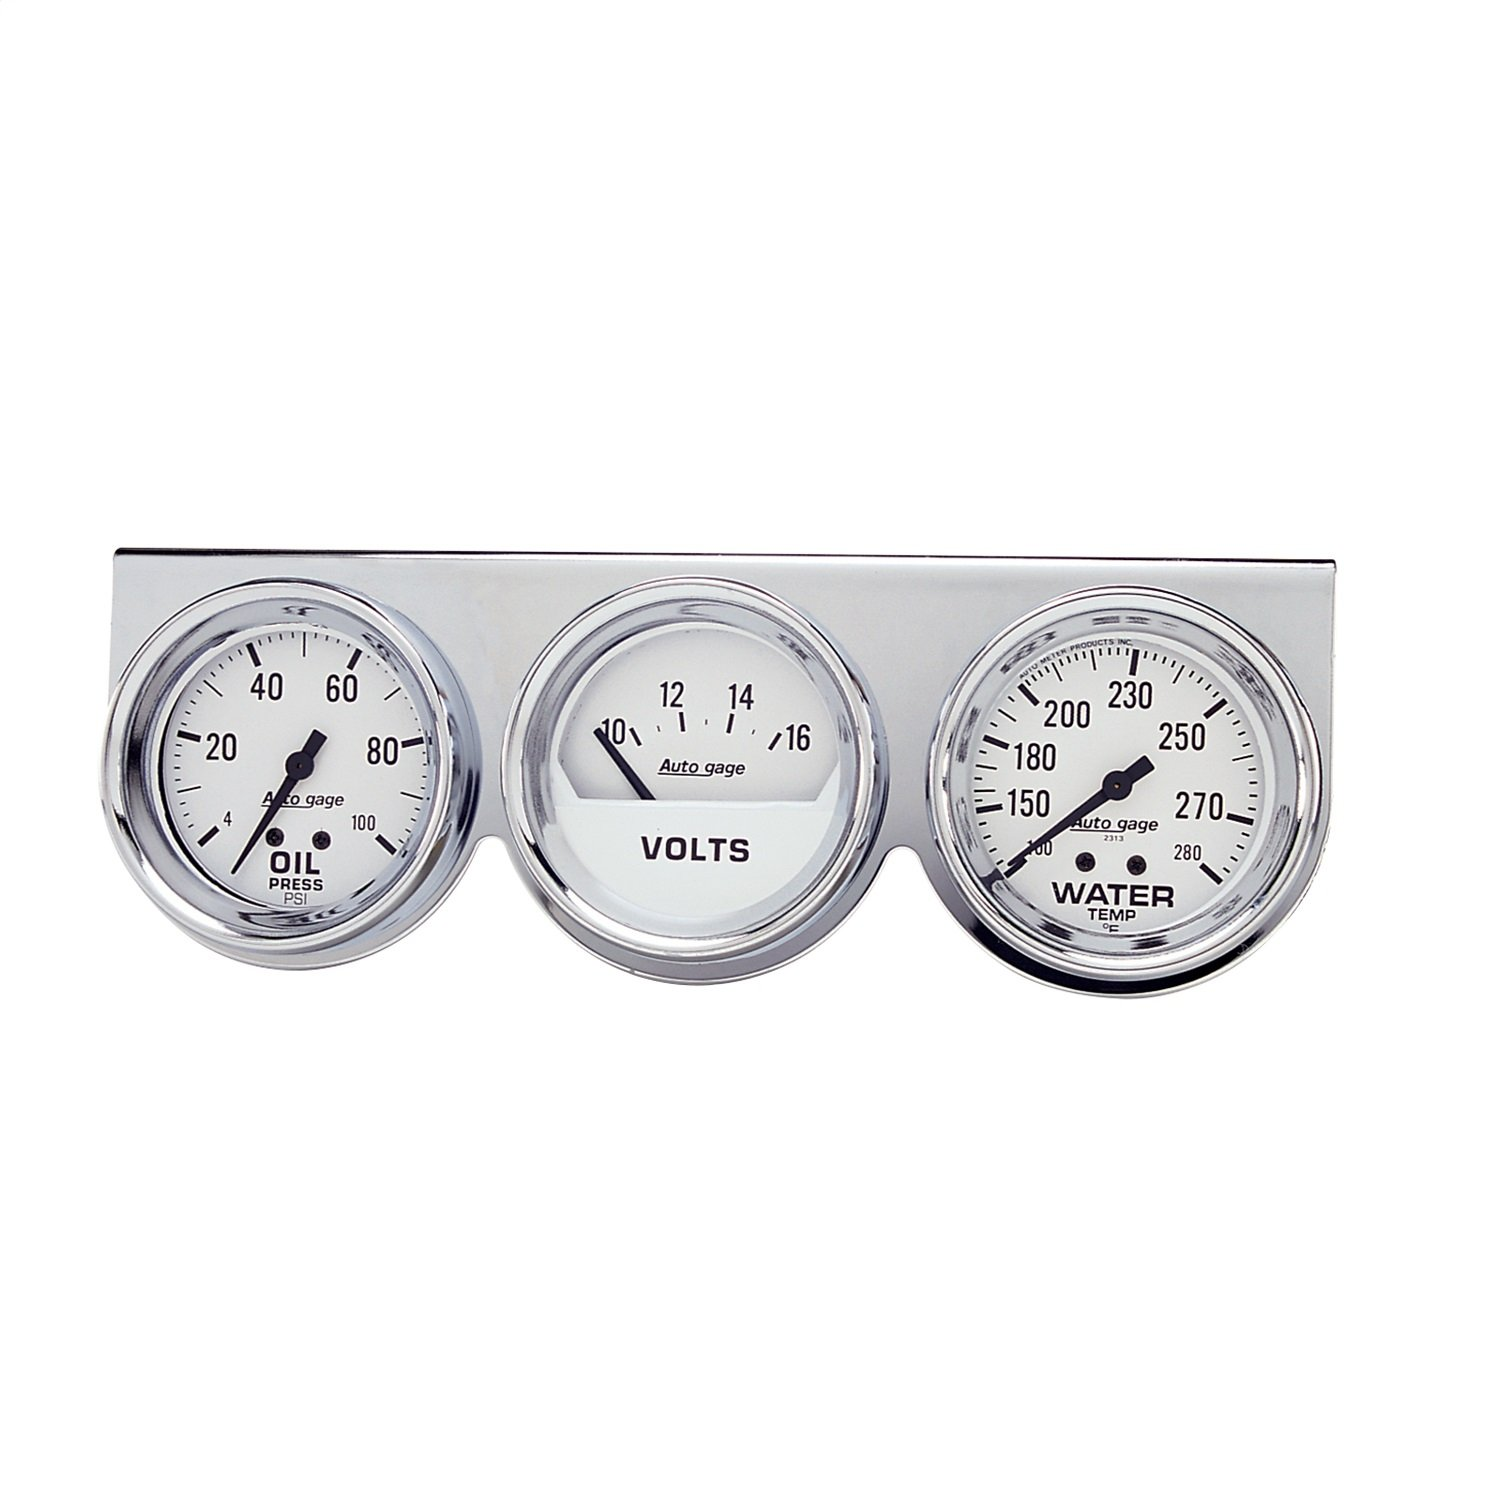 Auto Meter 2329 Autogage Mechanical White Oil//Volt//Water Gauge with Chrome Console